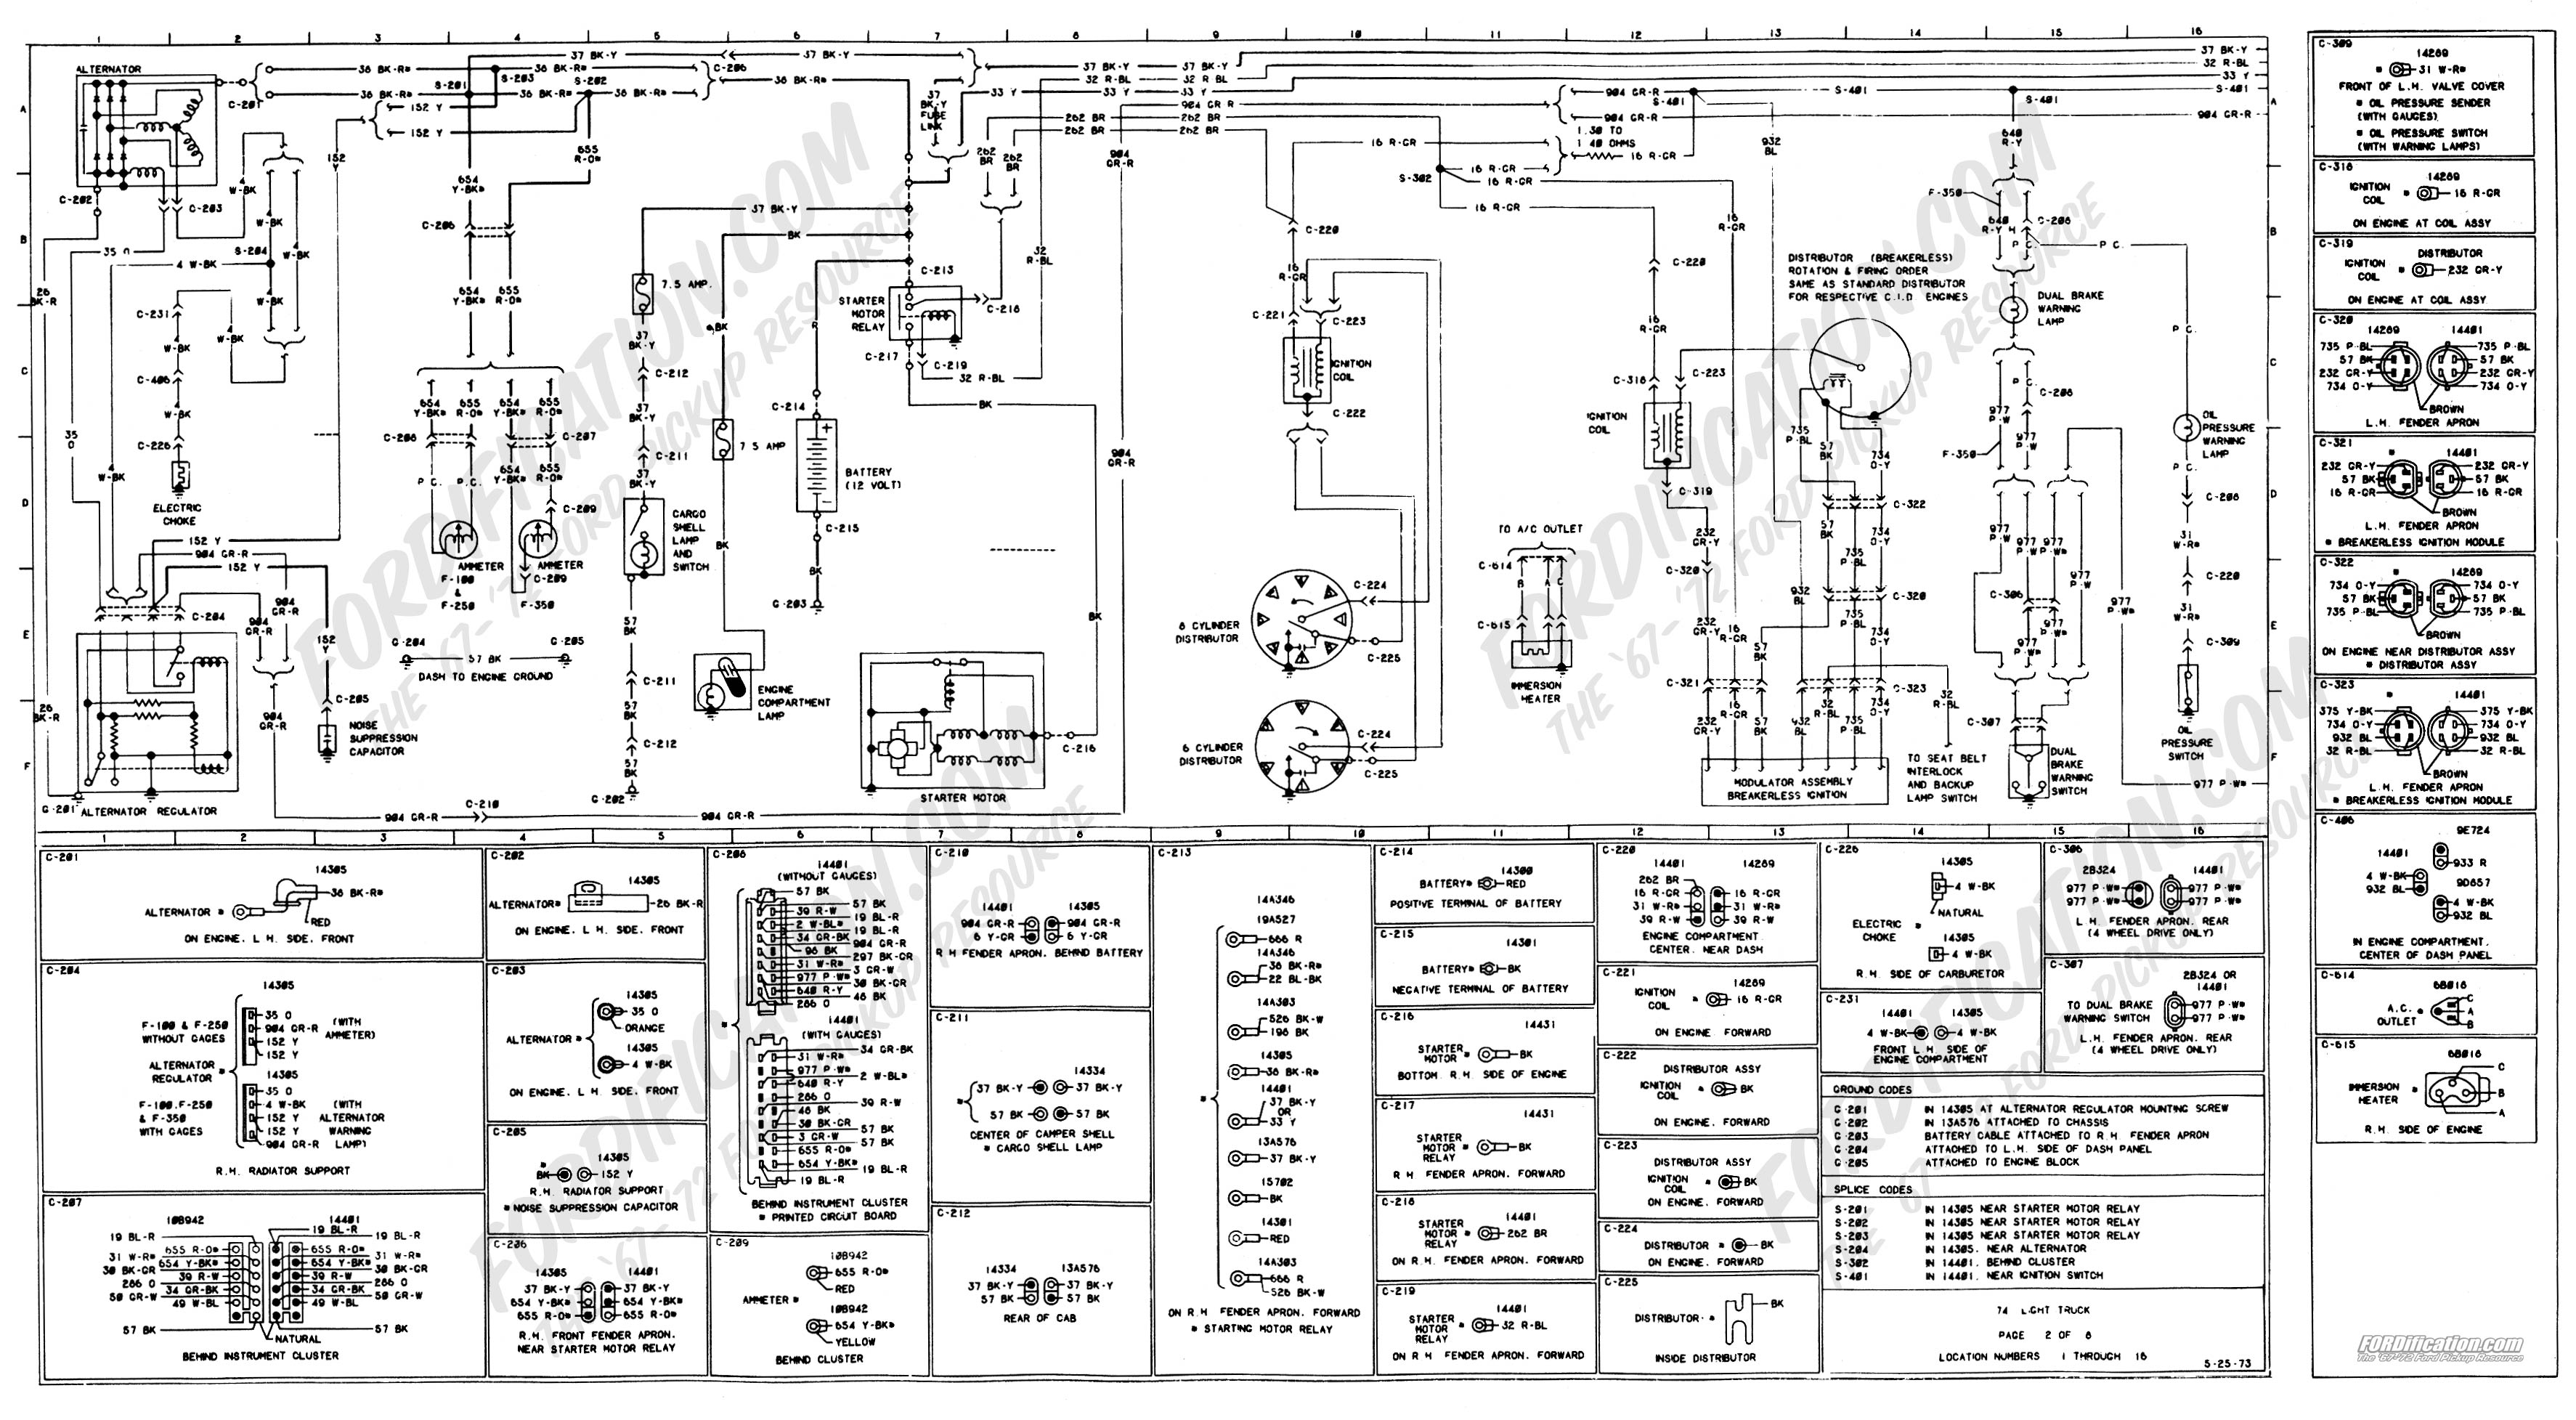 Wiring Master Of on 1972 Ford F100 Wiring Diagram